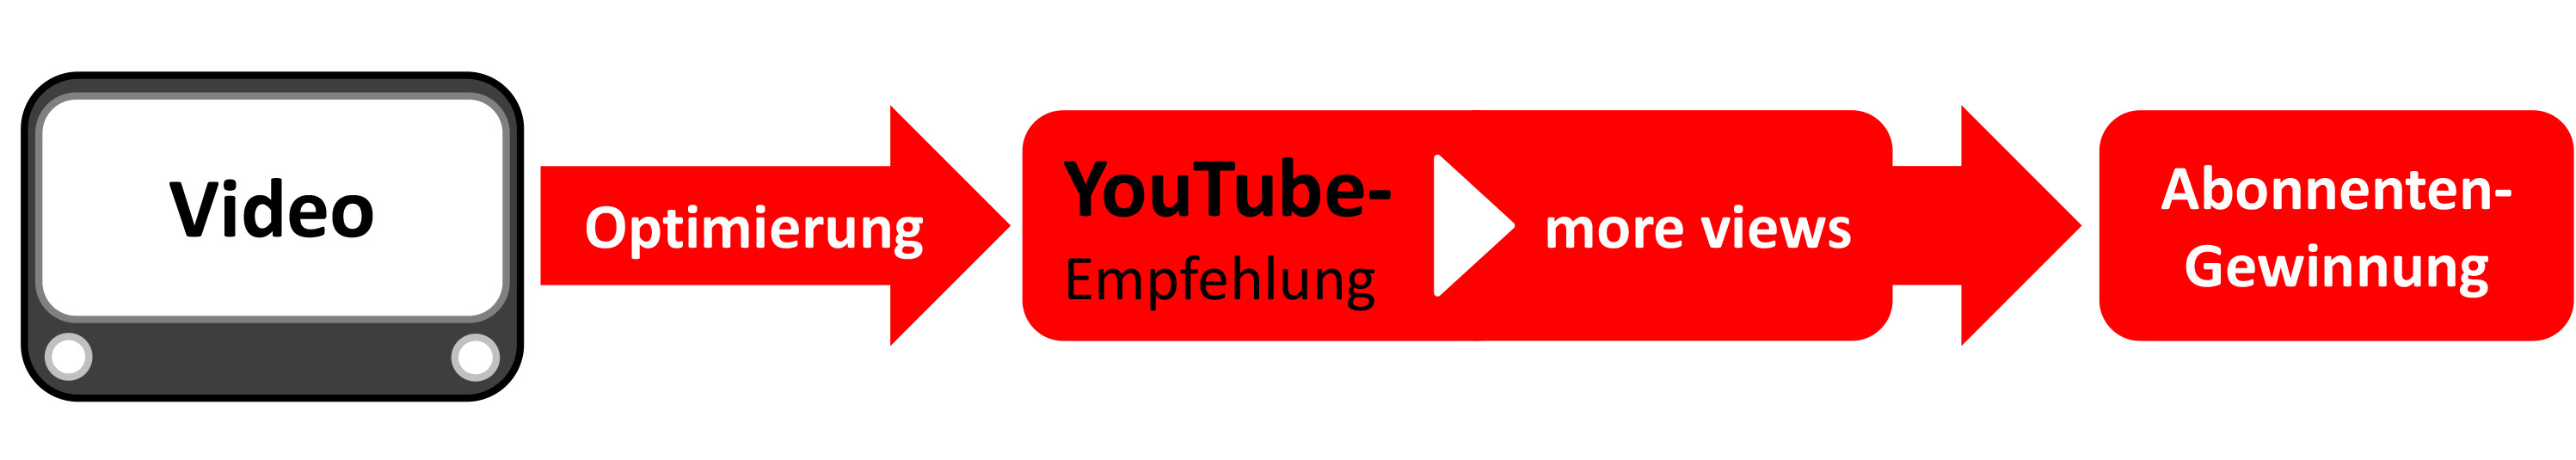 Youtube-Abonnenten gewinnen: It's all about content